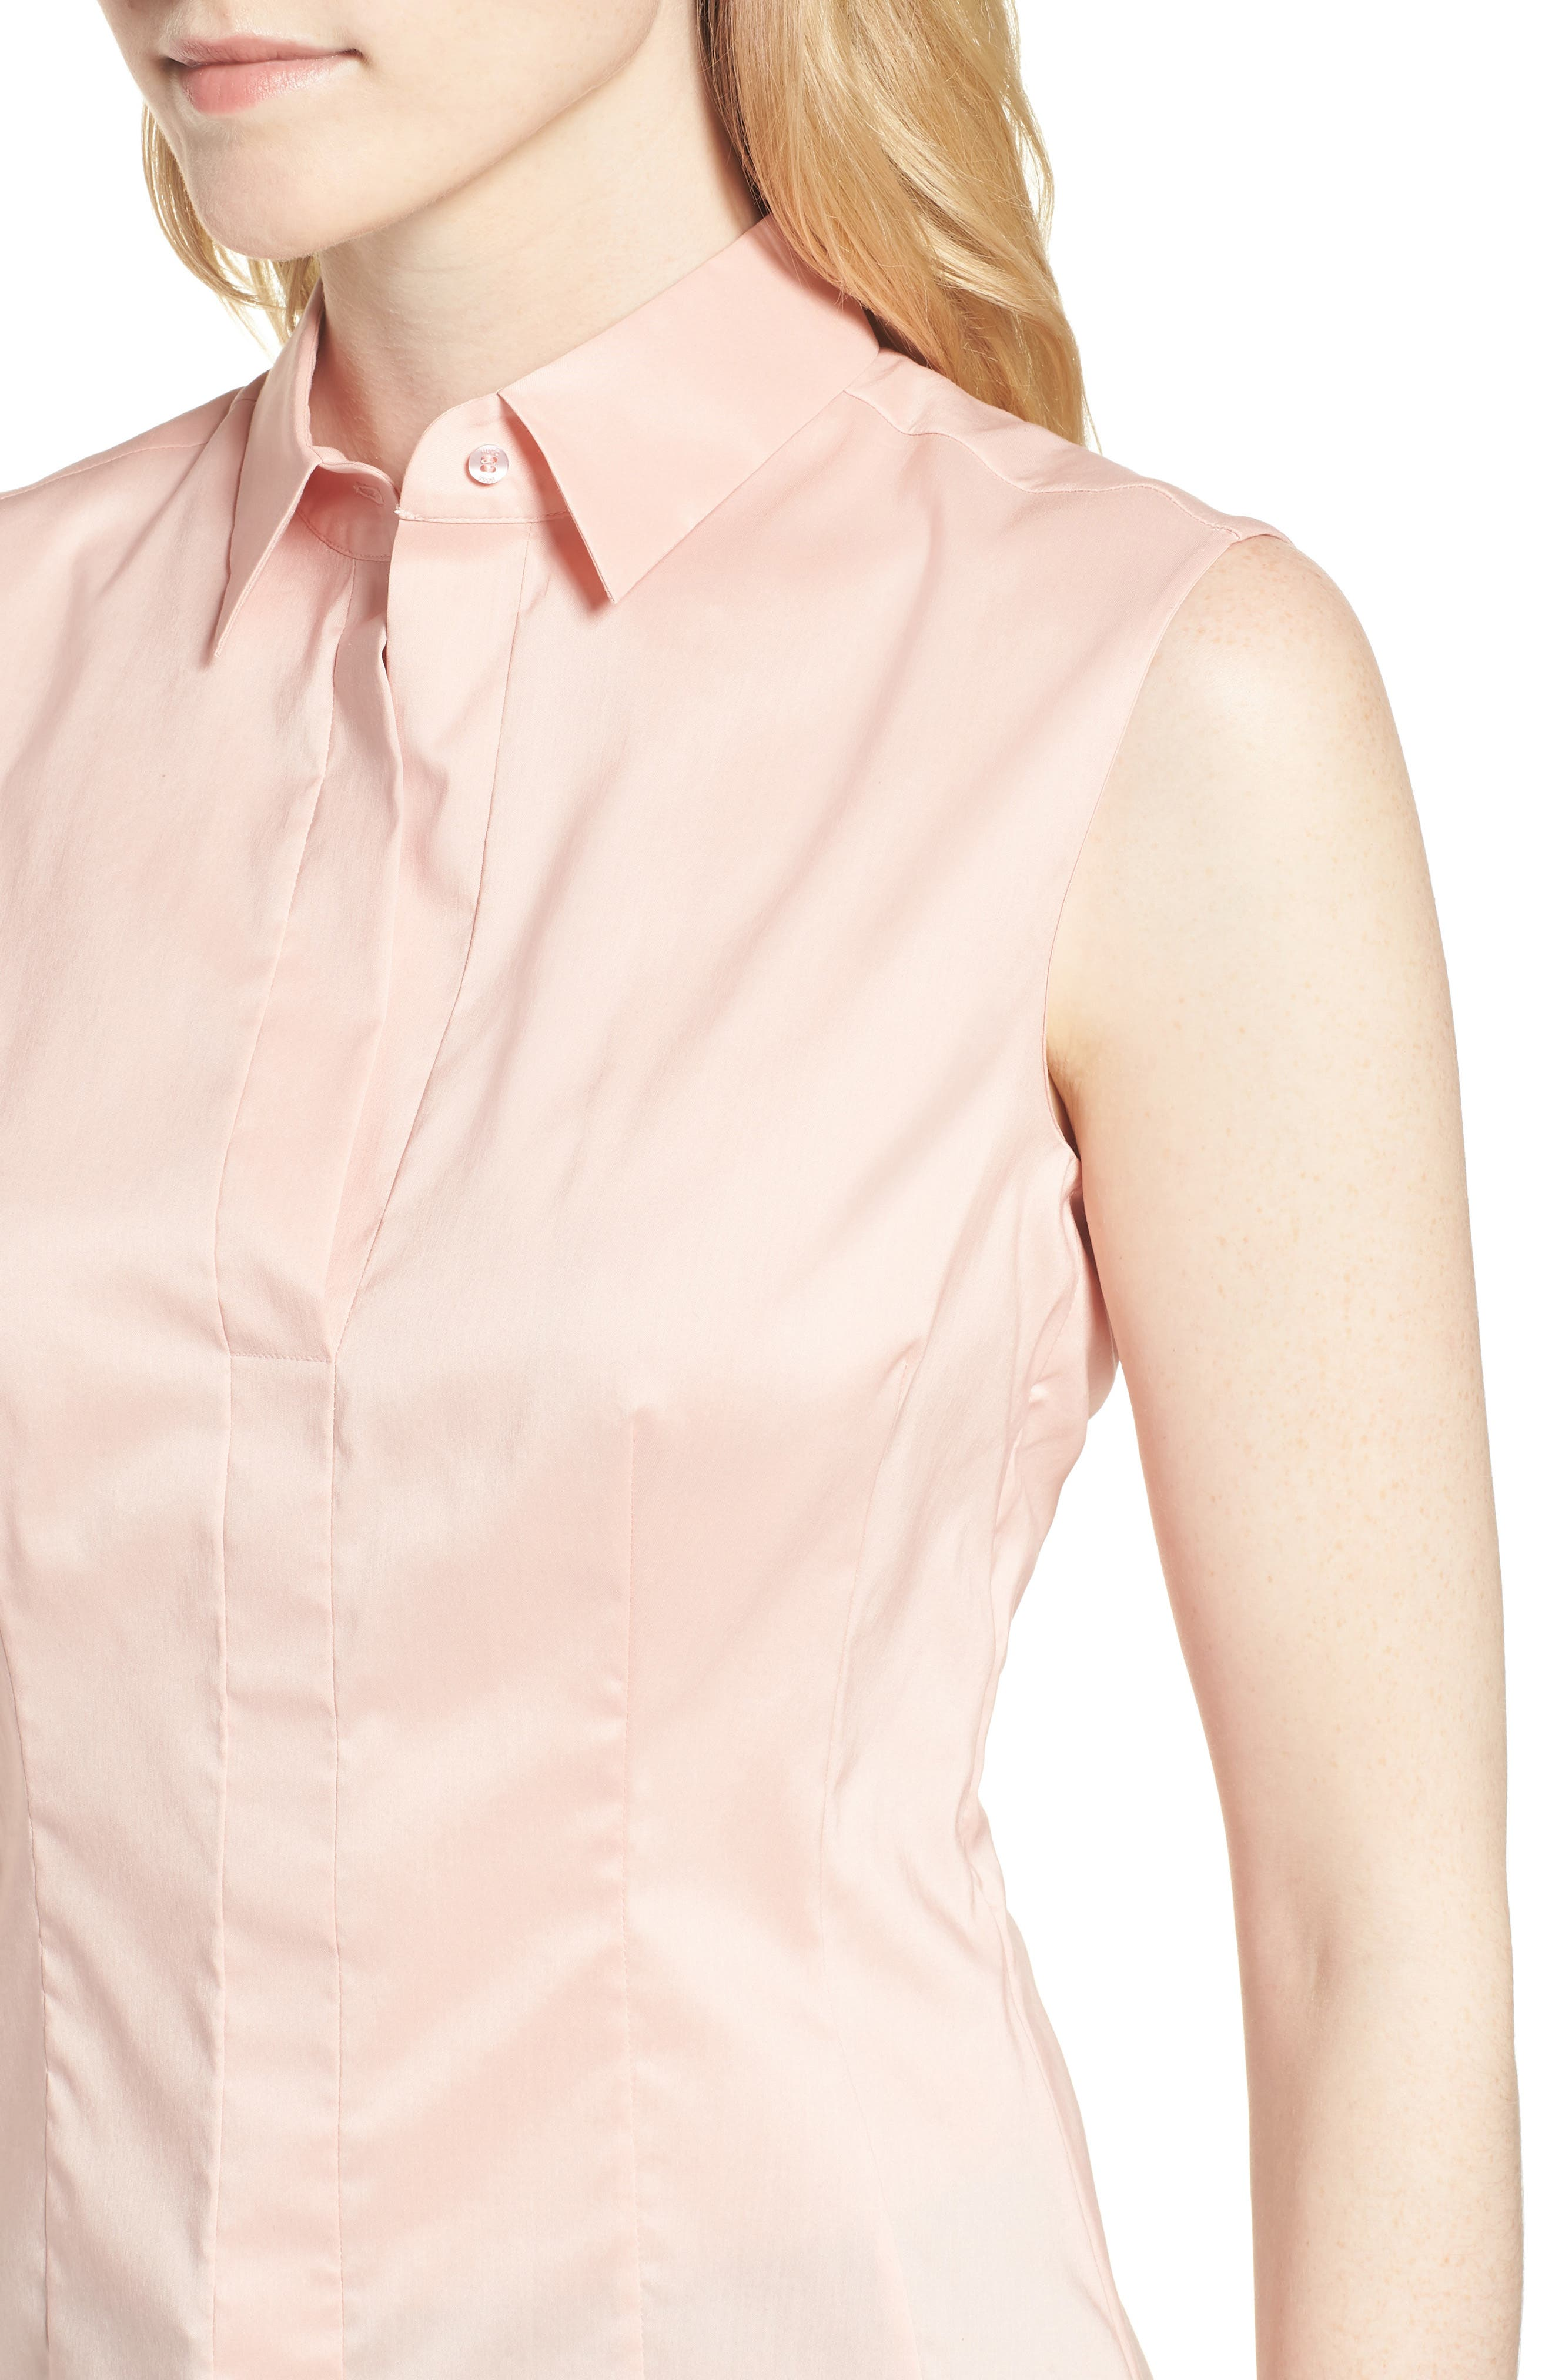 Bashiva Stretch Poplin Blouse,                             Alternate thumbnail 4, color,                             Blush